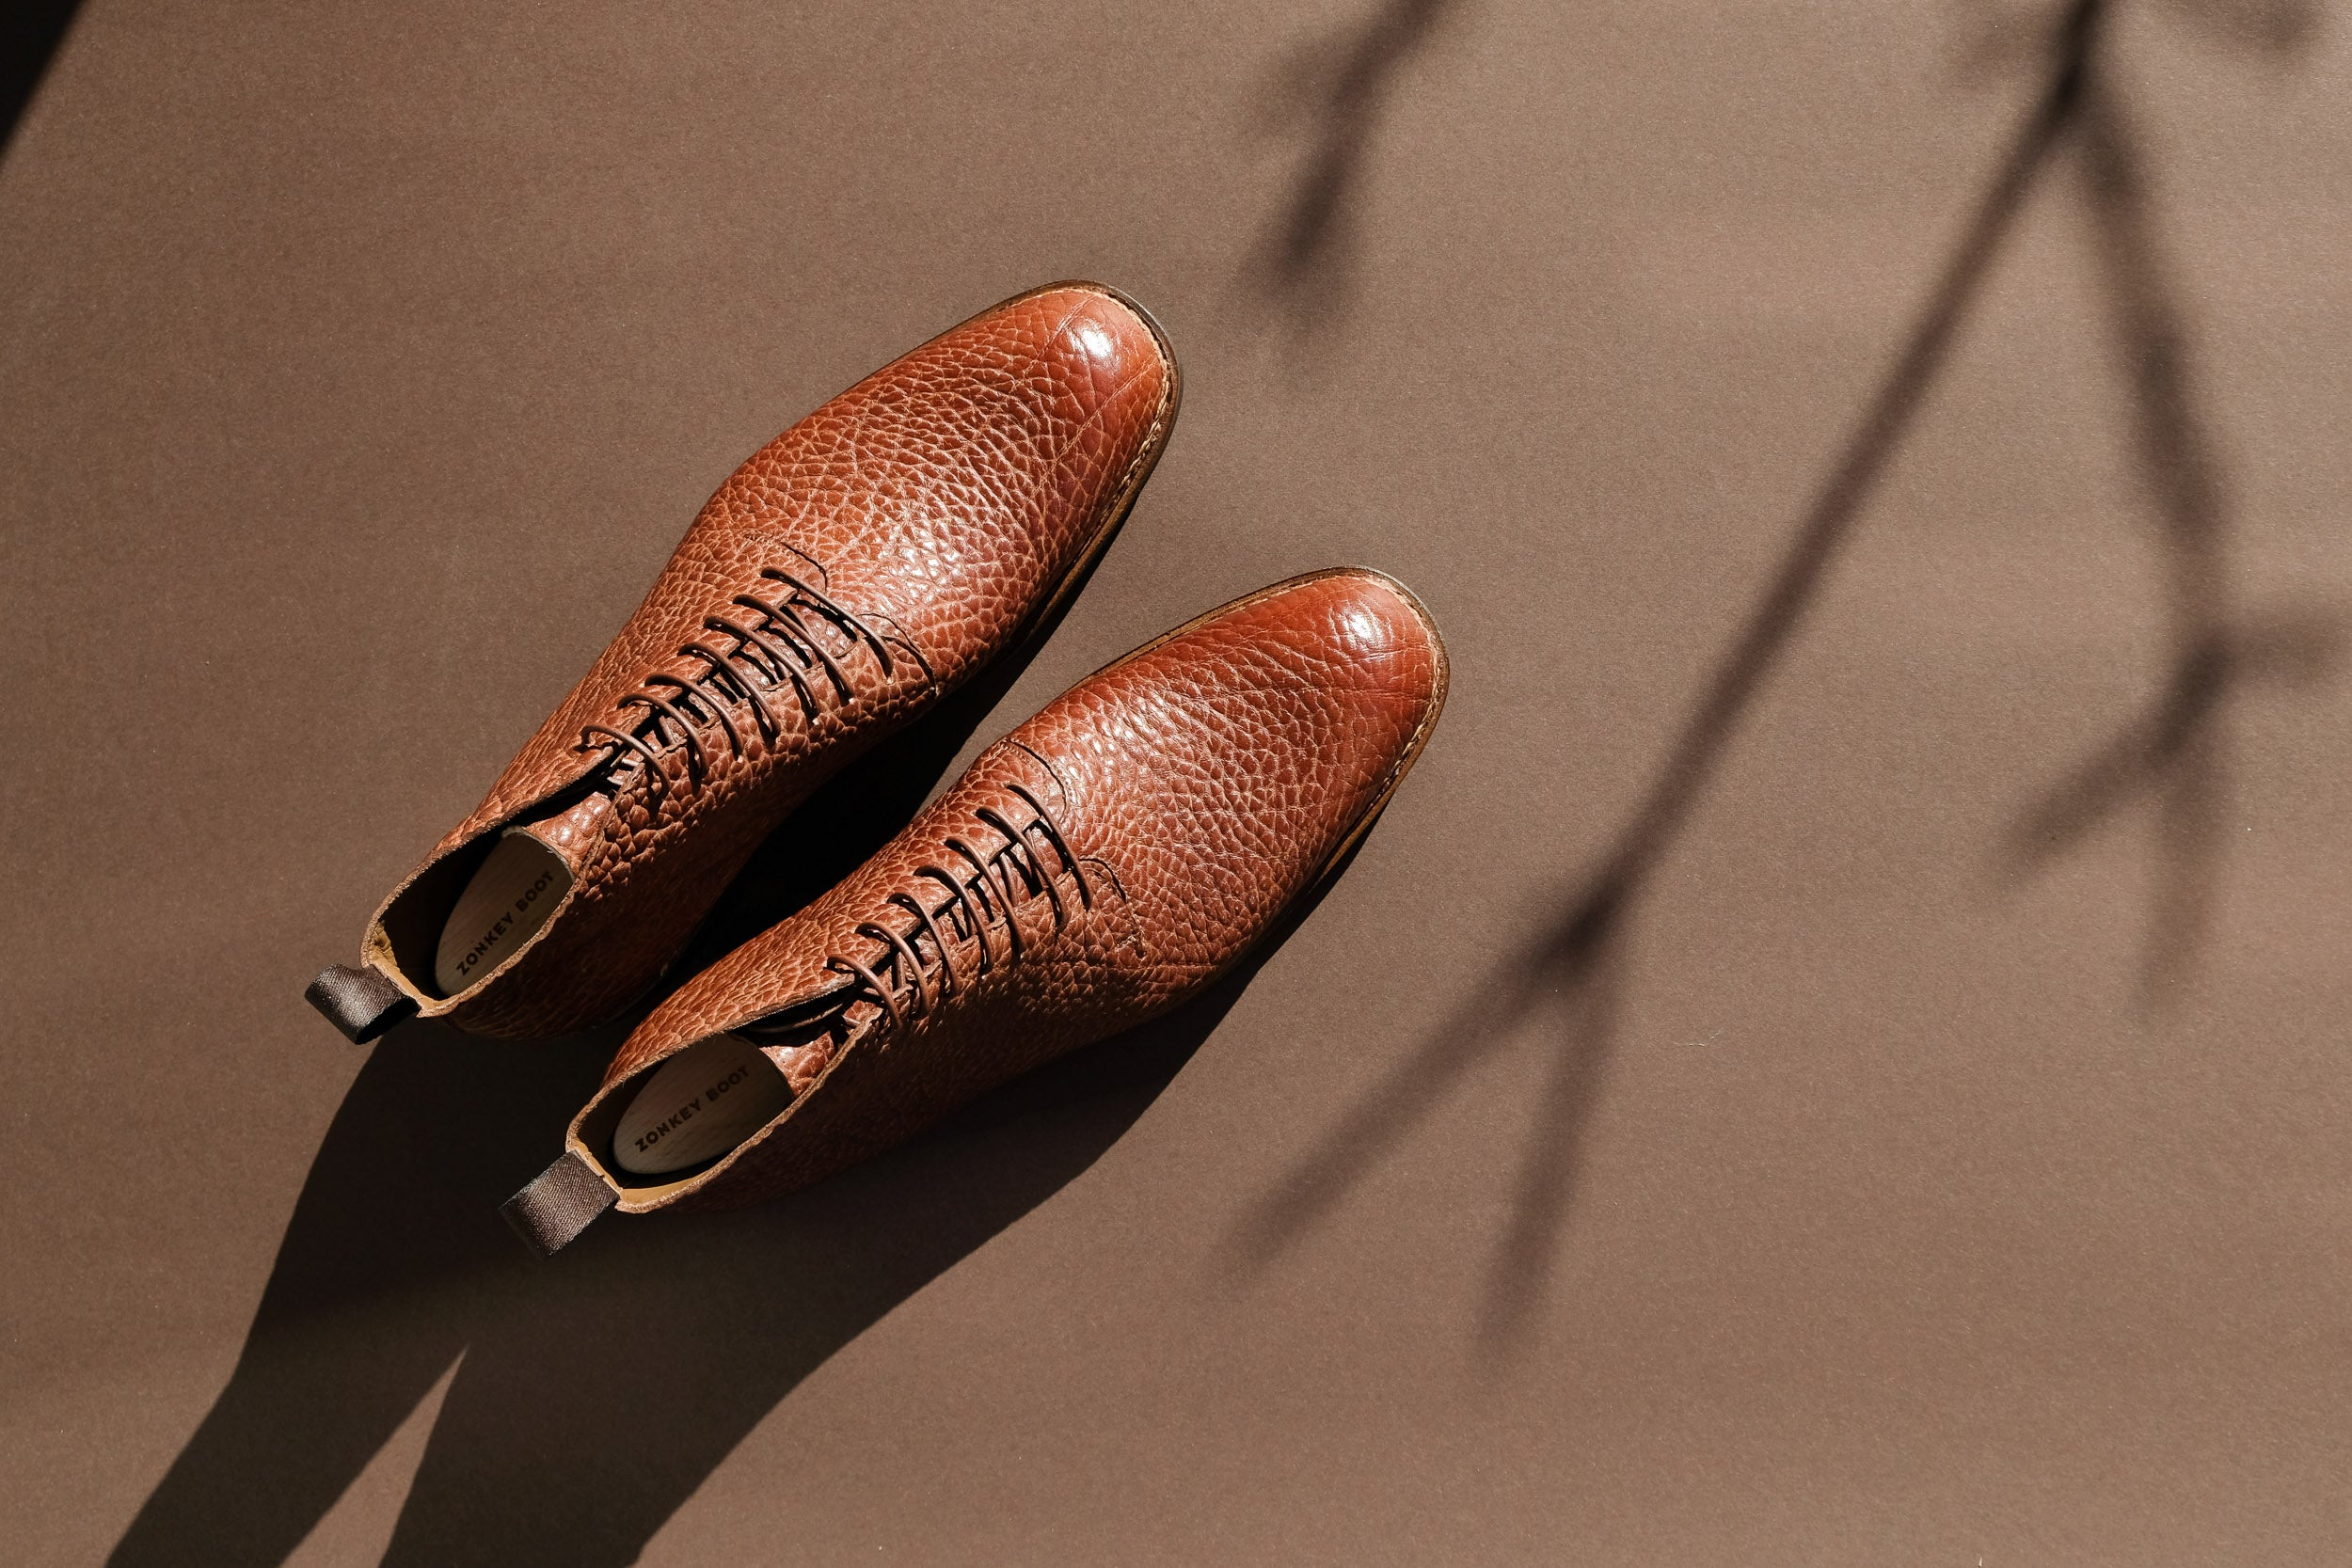 Zonkey Boot Norvegese wholecut derby boots from Shrunken Bull leather